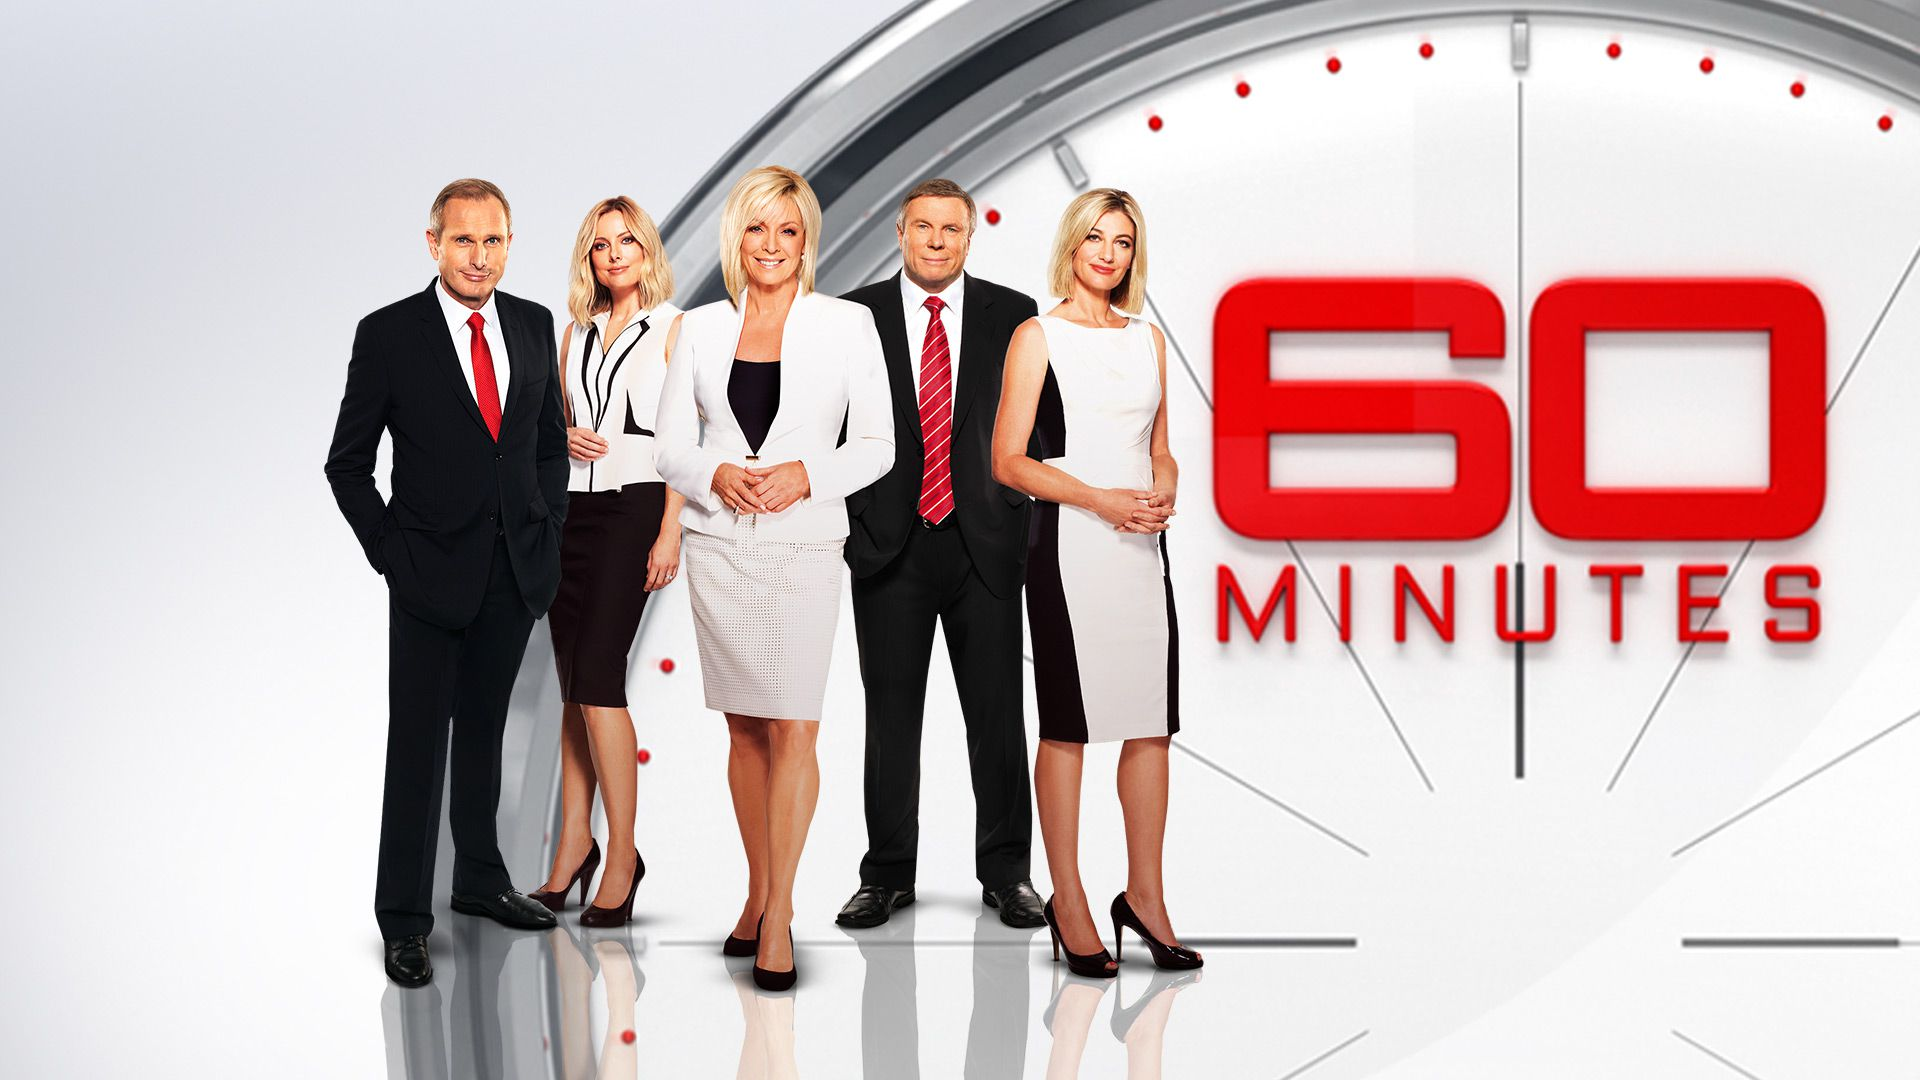 Send A Story 60 Minutes Extras 2016 Exclusive Content